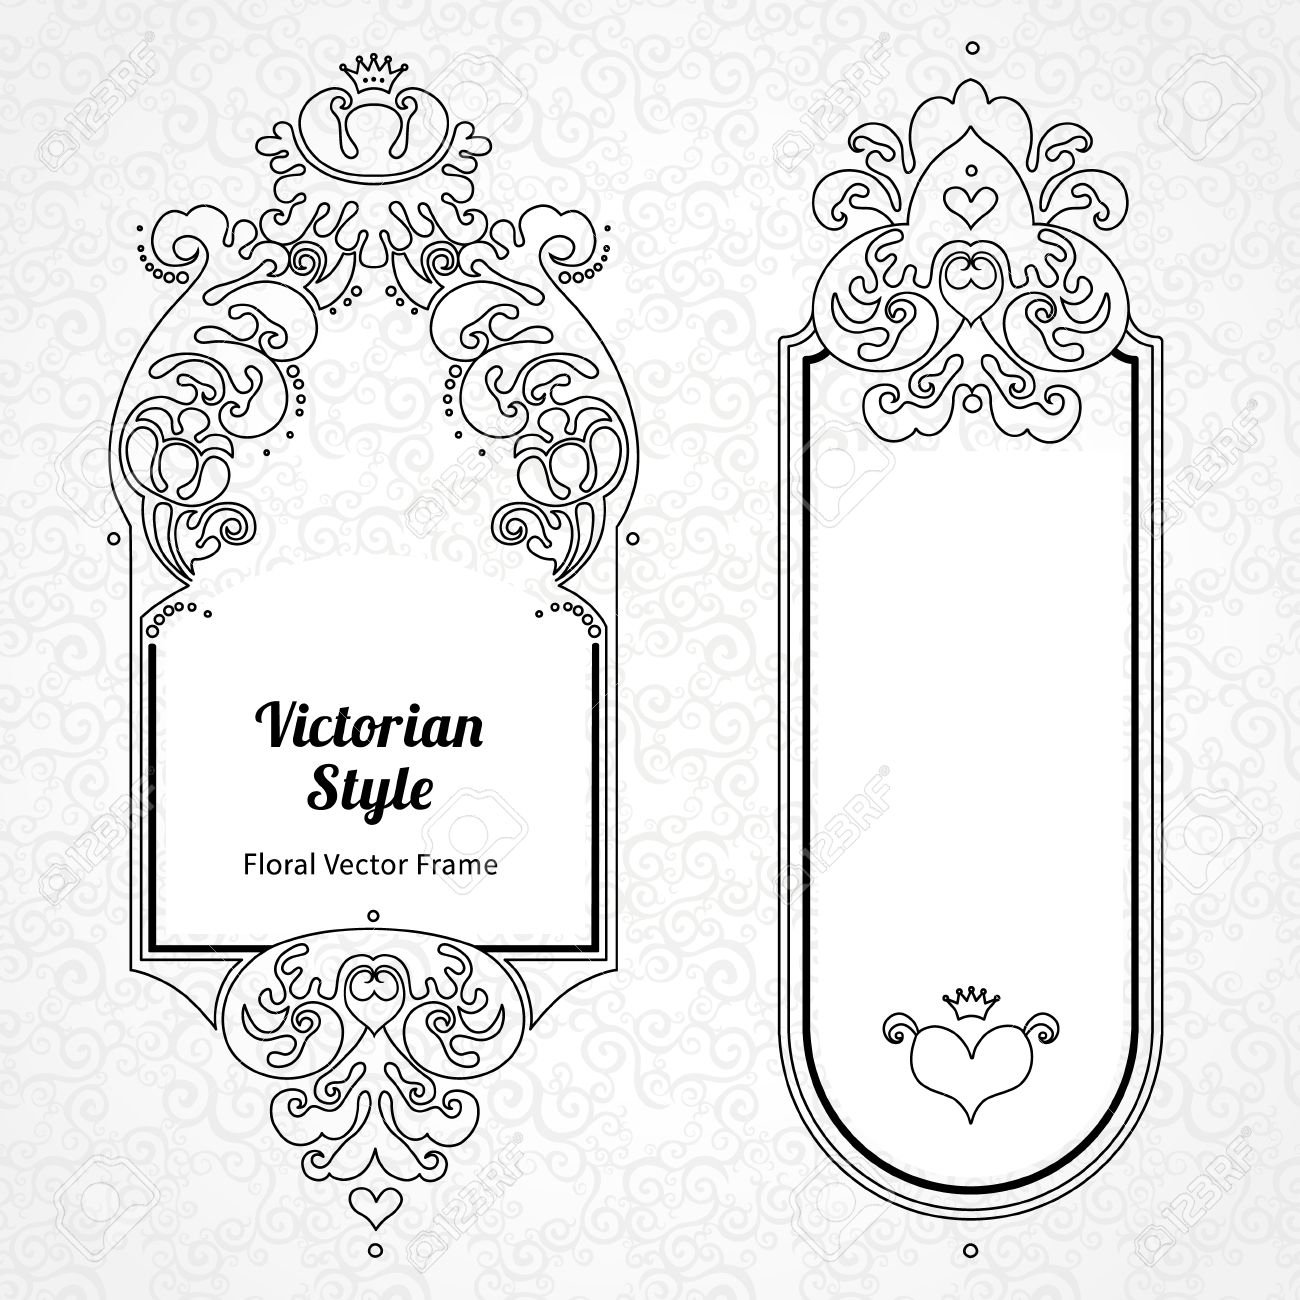 49343951 Vector decorative frame in Victorian style Elegant element for design template place for text Outlin Stock Vector vector decorative frame in victorian style elegant element for on frame outline template